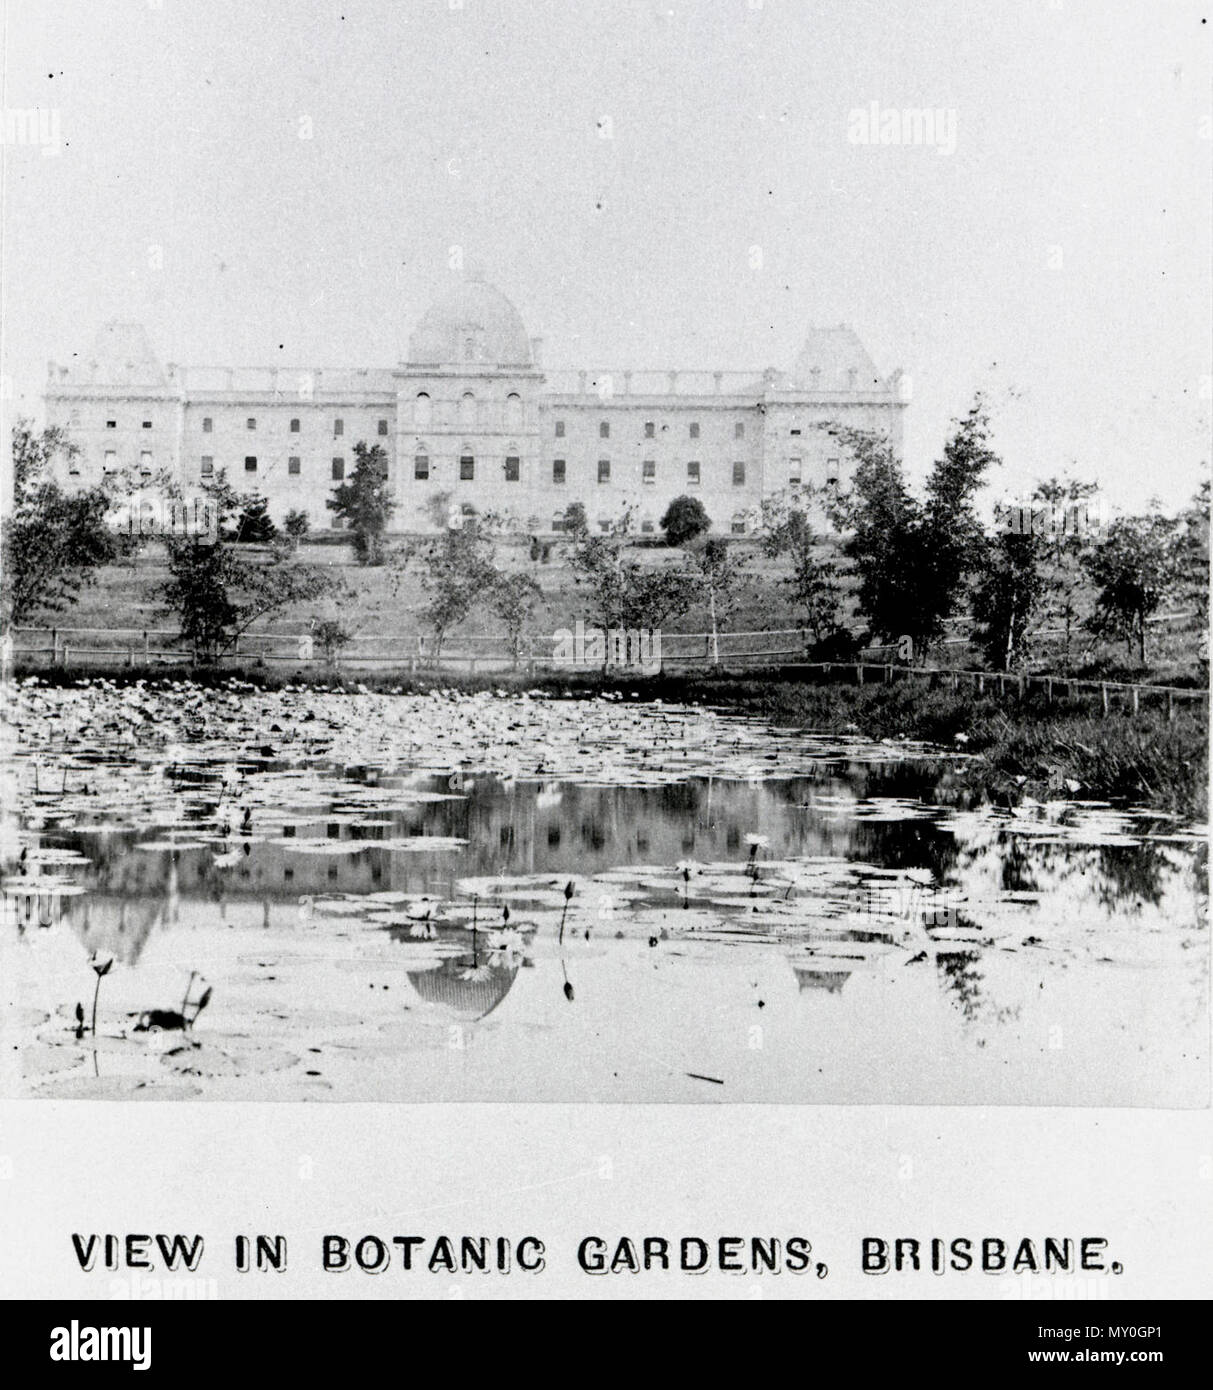 Brisbane's Botanic Gardens, c1900. BRISBANE BOTANIC GARDENS. 19036724?searchTerm=brisbane botanic gardens&searchLimits=l-state=Queensland|||l-decade=190|||l-year=1900 )   TO THE EDITOR. Sir, --I have visited the Botanic Gardens lately on several occasions, and admire very much the manner in which they are recovering from the disasters of storm and flood. The trees, shrubs, and flowers will shortly be bursting into the fair blossom of spring, when the airs of heaven will become more genial to young and old, especially perhaps to those whose wandering feet lead them to discover the lovely pe - Stock Image